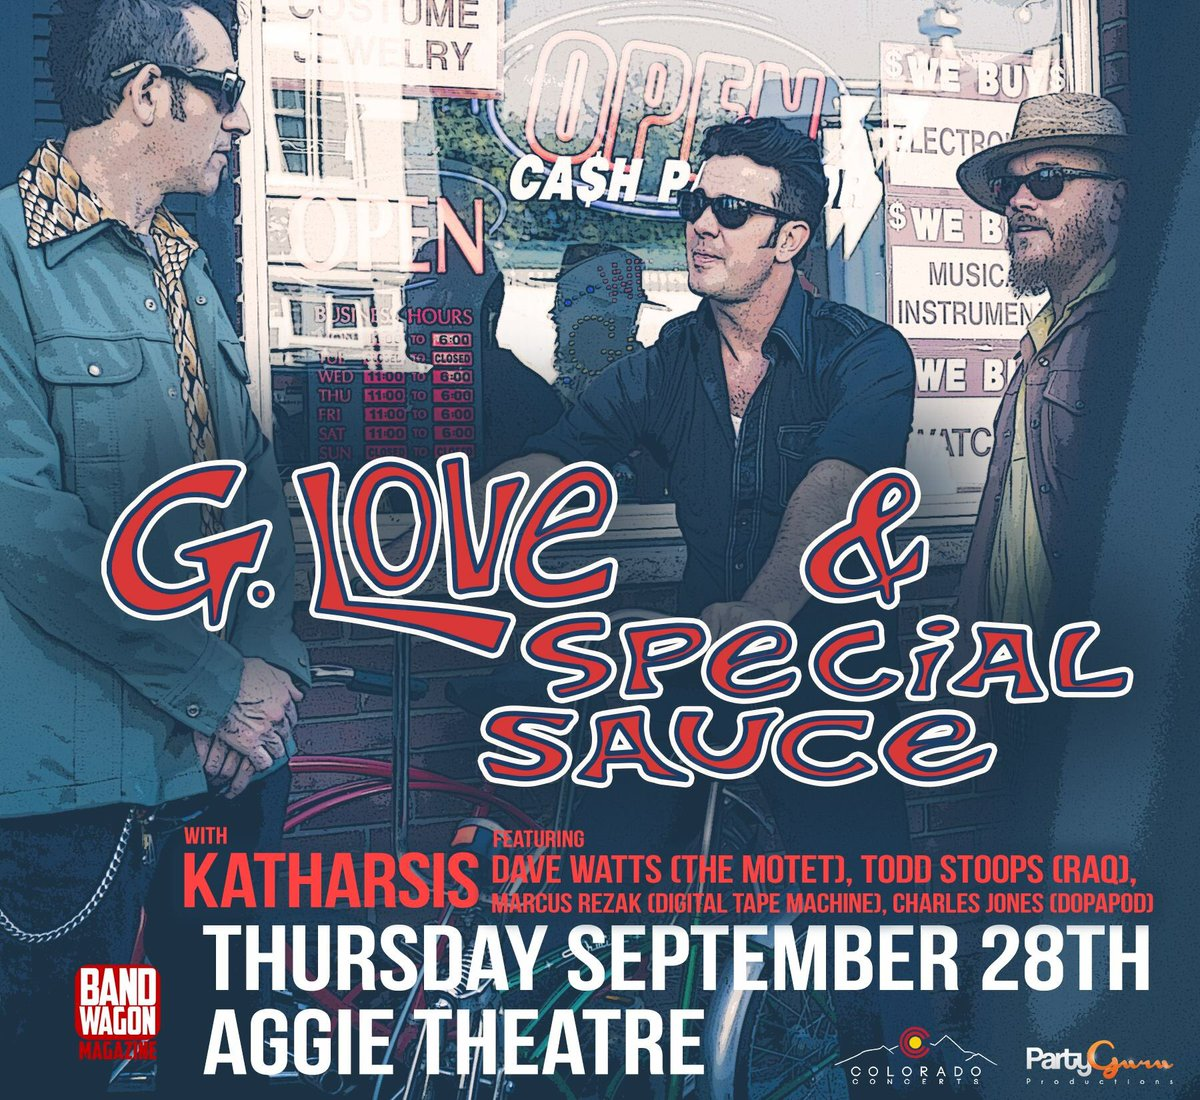 G. Love, Aggie Theatre , PartyGuruProductions and 2 others